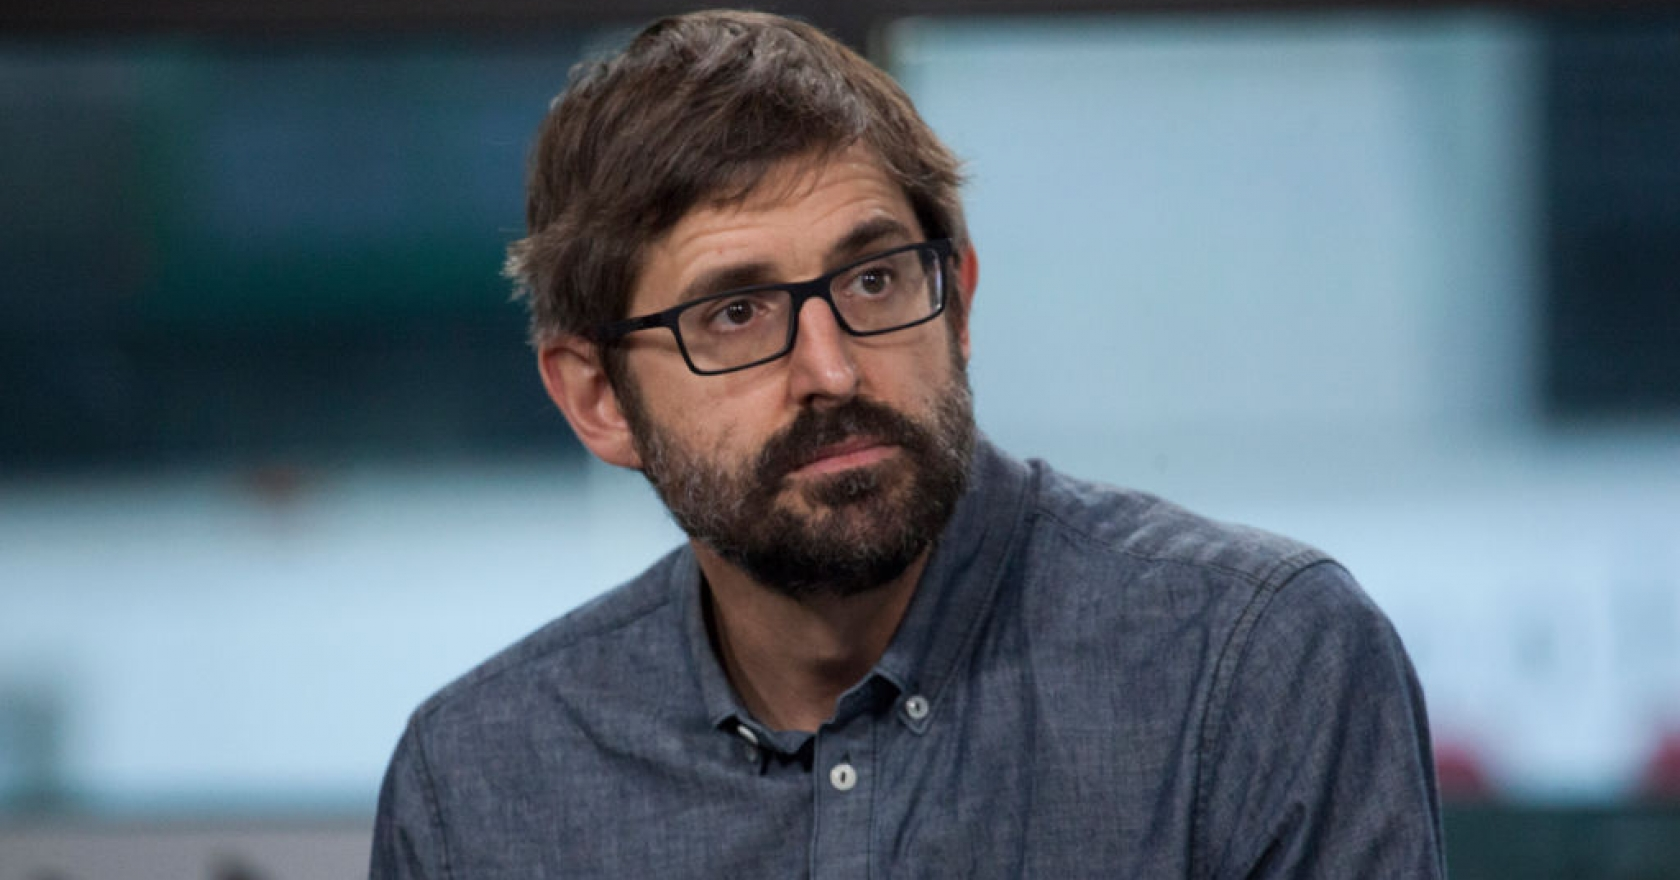 BBC iPlayer: Louis Theroux fans, a new documentary is ...